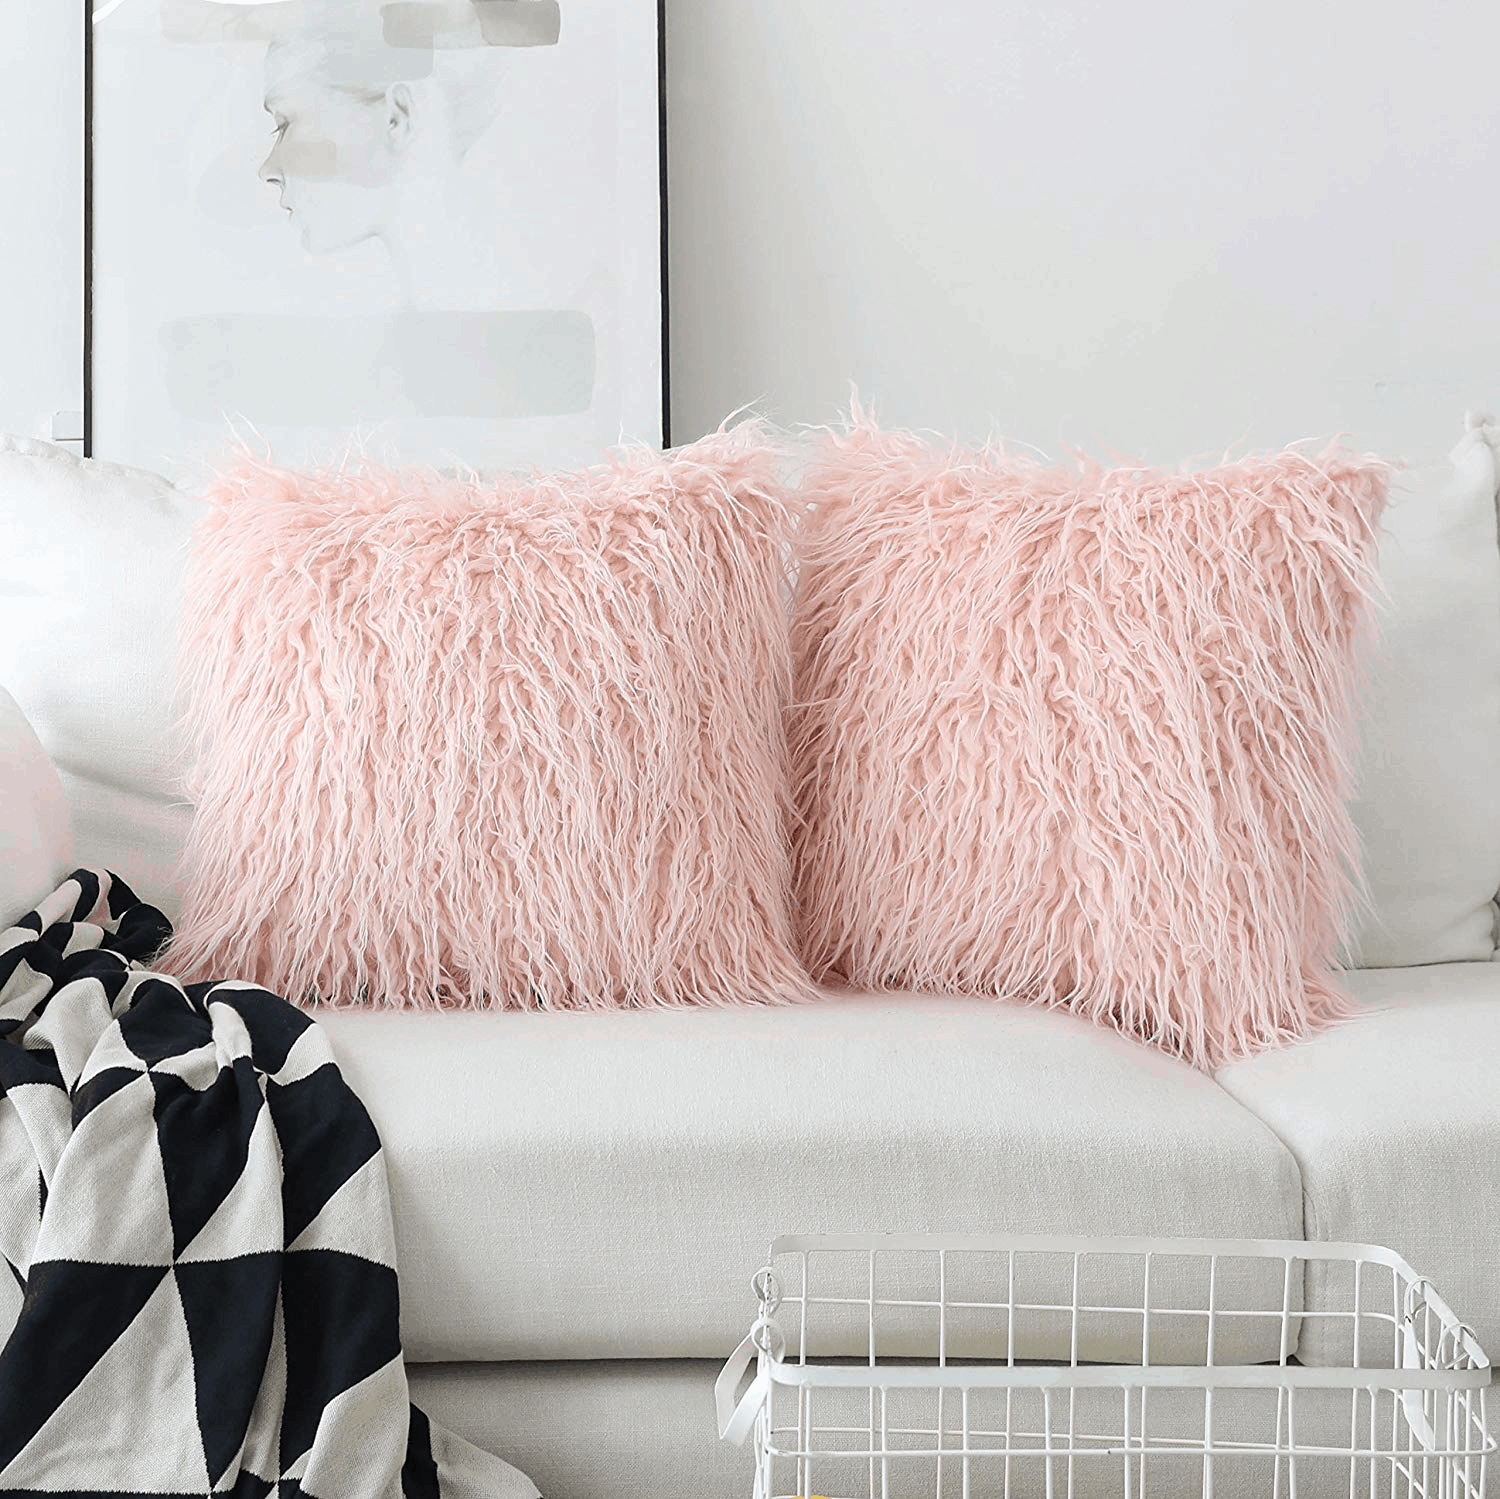 8 Cute Dorm Room Bedding Ideas You Need To Copy Simply Allison In 2020 Pillow Decorative Bedroom Decorative Pillows White Decorative Pillows